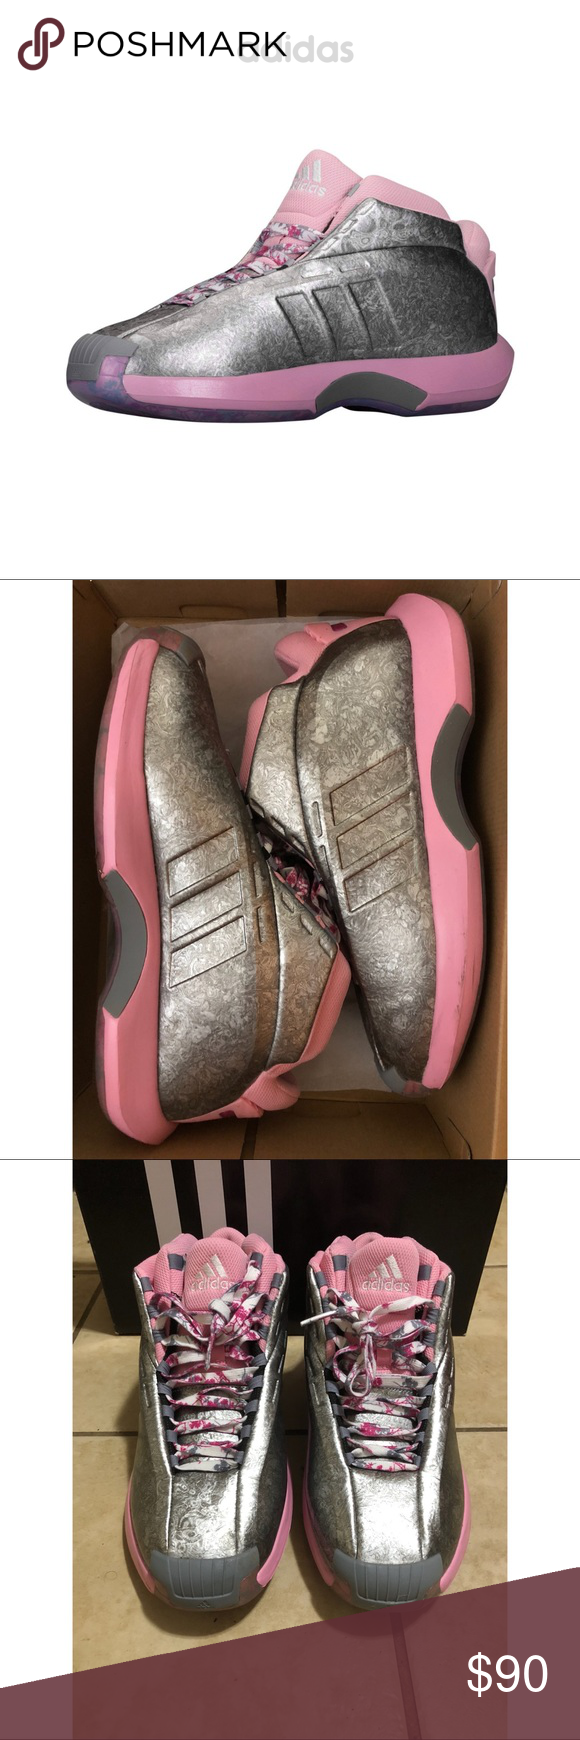 official photos cb563 e8d63 Adidas Crazy 1 Adidas Crazy 1 florist John Wall pink rose silver. These are  really cool! GUC. Comes with original box   laces. Men s size 12. adidas  Shoes ...